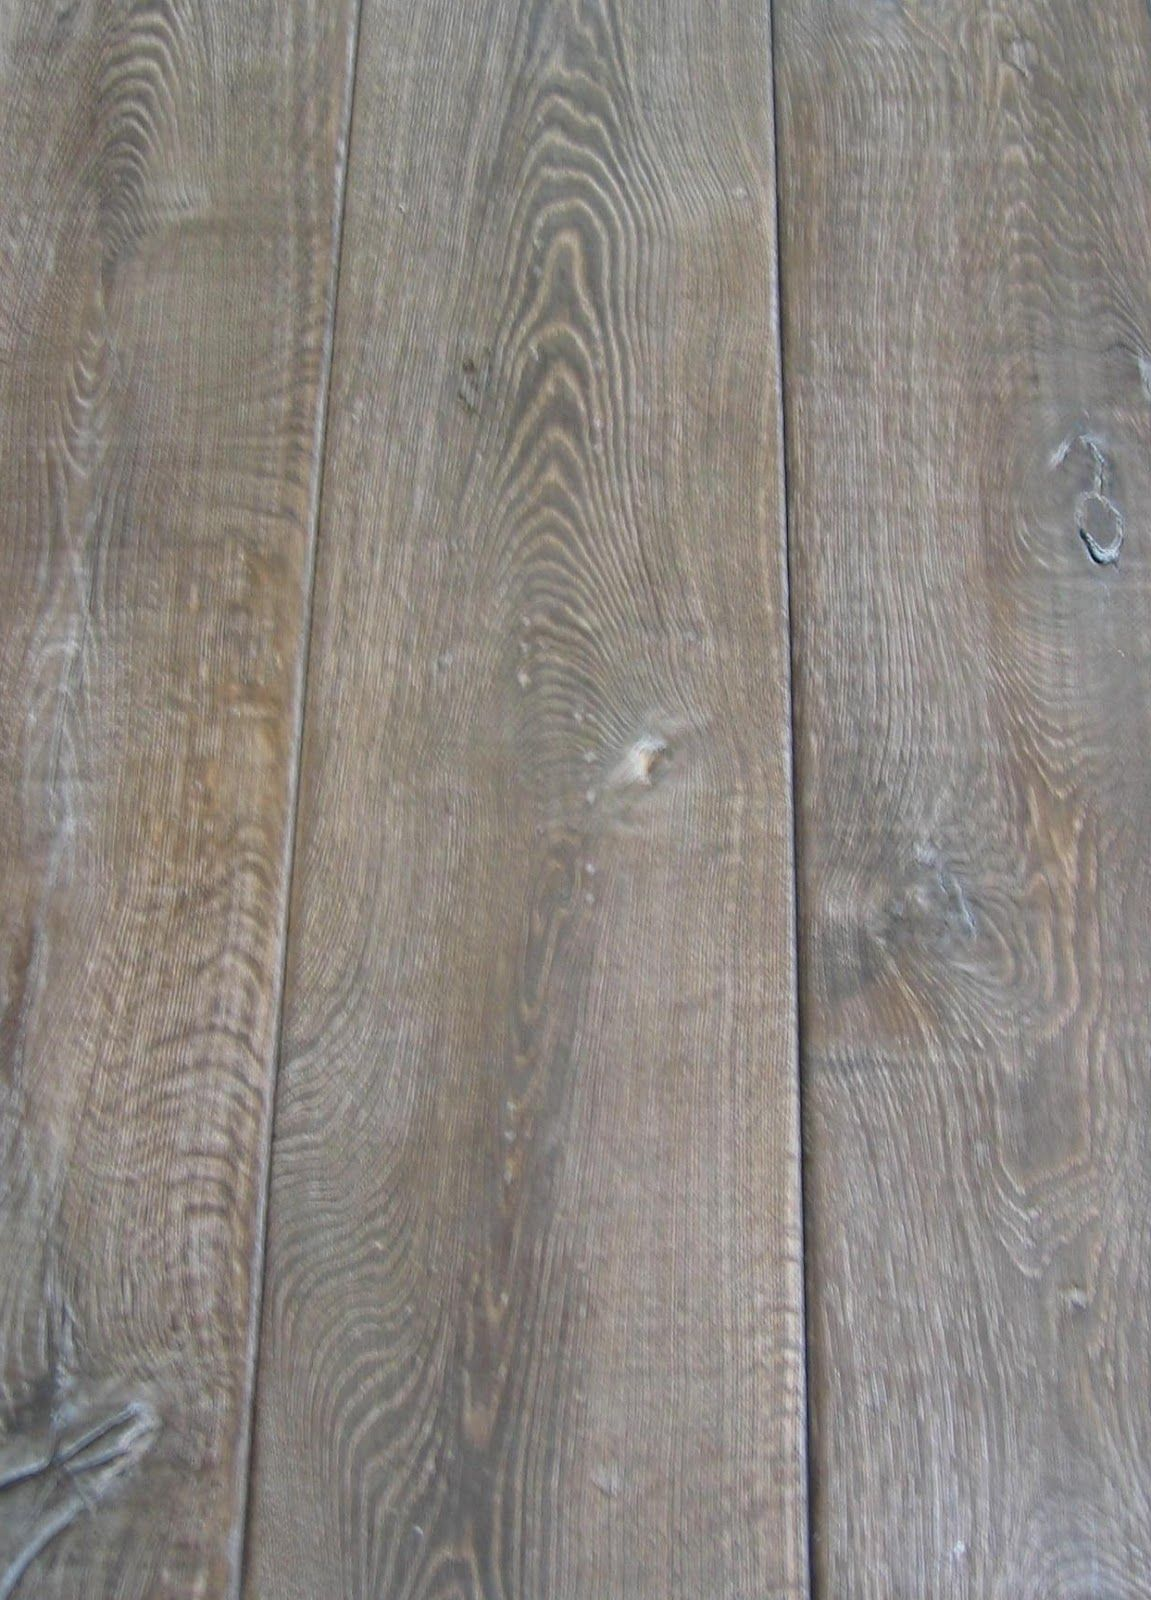 Driftwood Stain I Want To Do This On The Wood Panels Above The